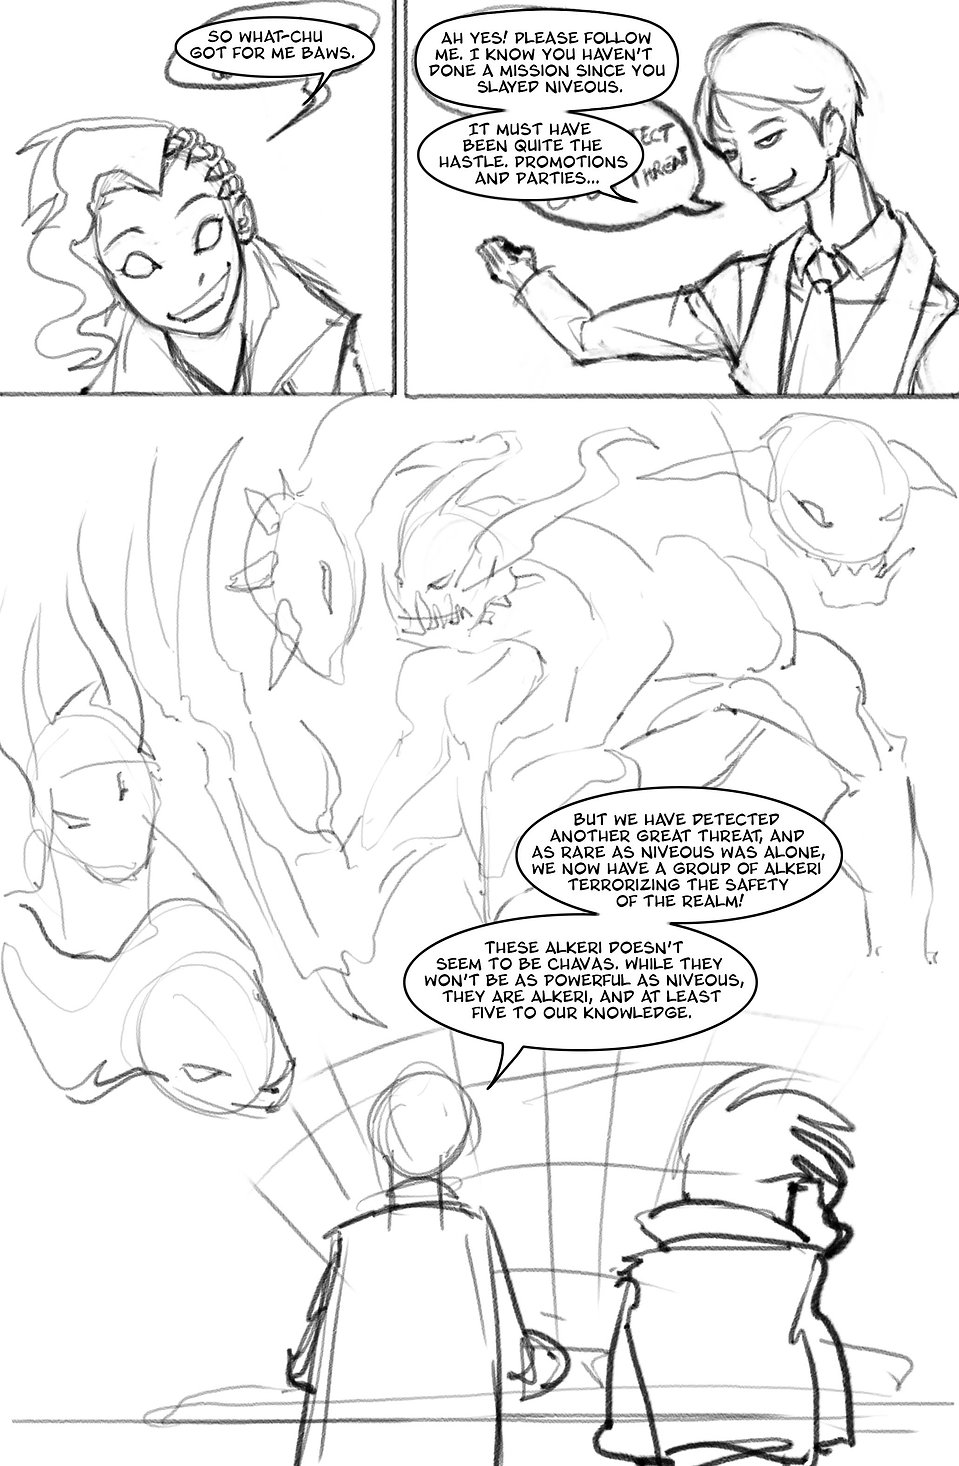 Niveous Pages 14.jpg